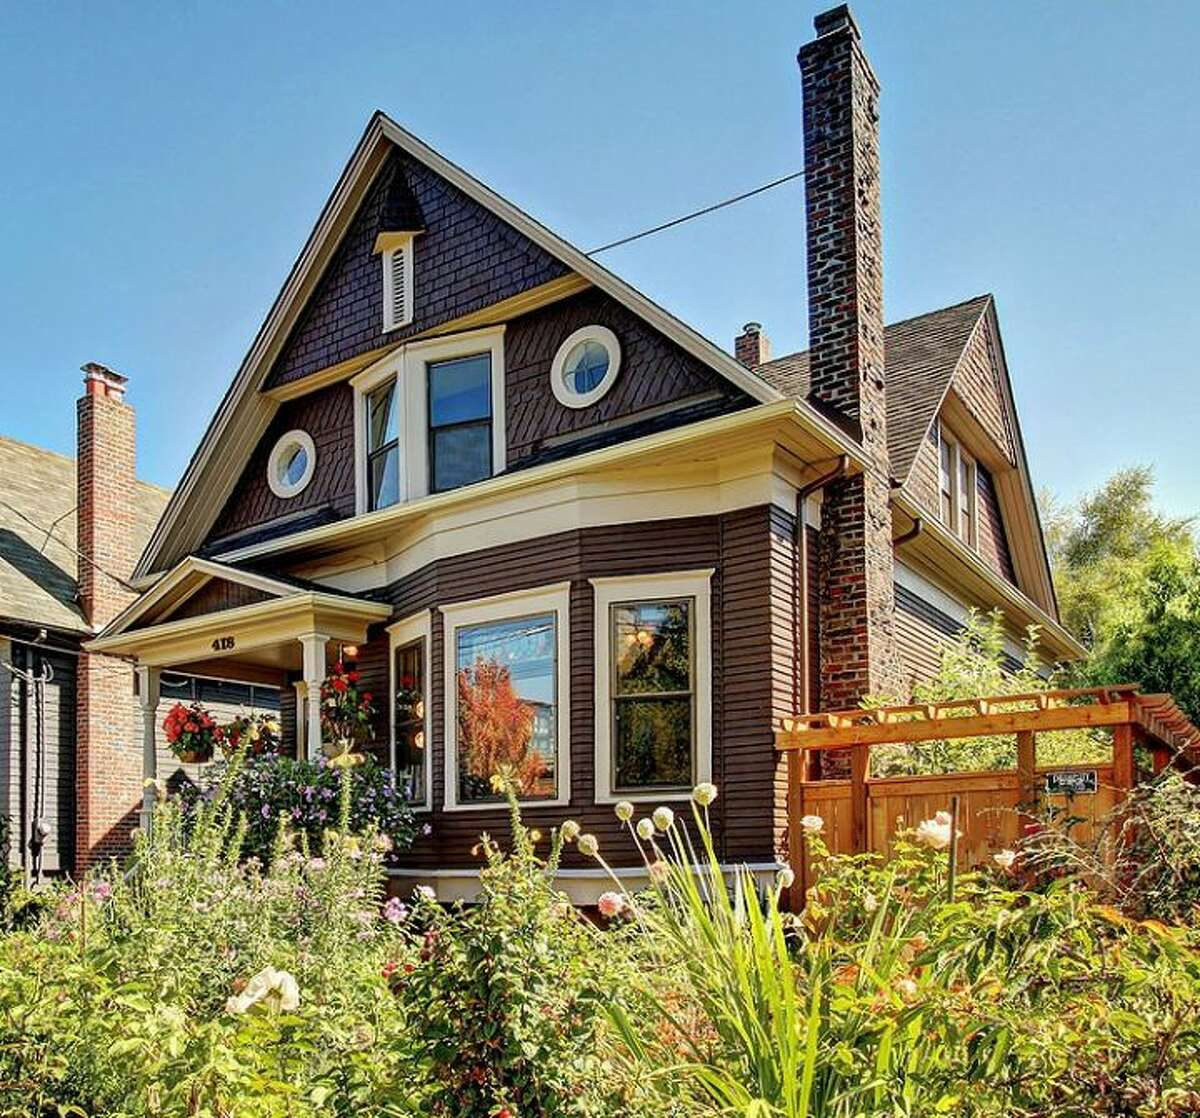 Capitol Hill is where many Seattleites would buy a home if they had $750,000 to $800,000 to spend. Here are some examples of what you could get there for that amount, starting with 418 10th Ave. E. The 2,440-square-foot Victorian, built in 1908, has three bedrooms, 1.75 bathrooms, exposed wood moldings, coved, 12-foot ceilings and a den on a 4,000-square-foot lot with a greenhouse. It's listed for $789,999, although a sale is pending.